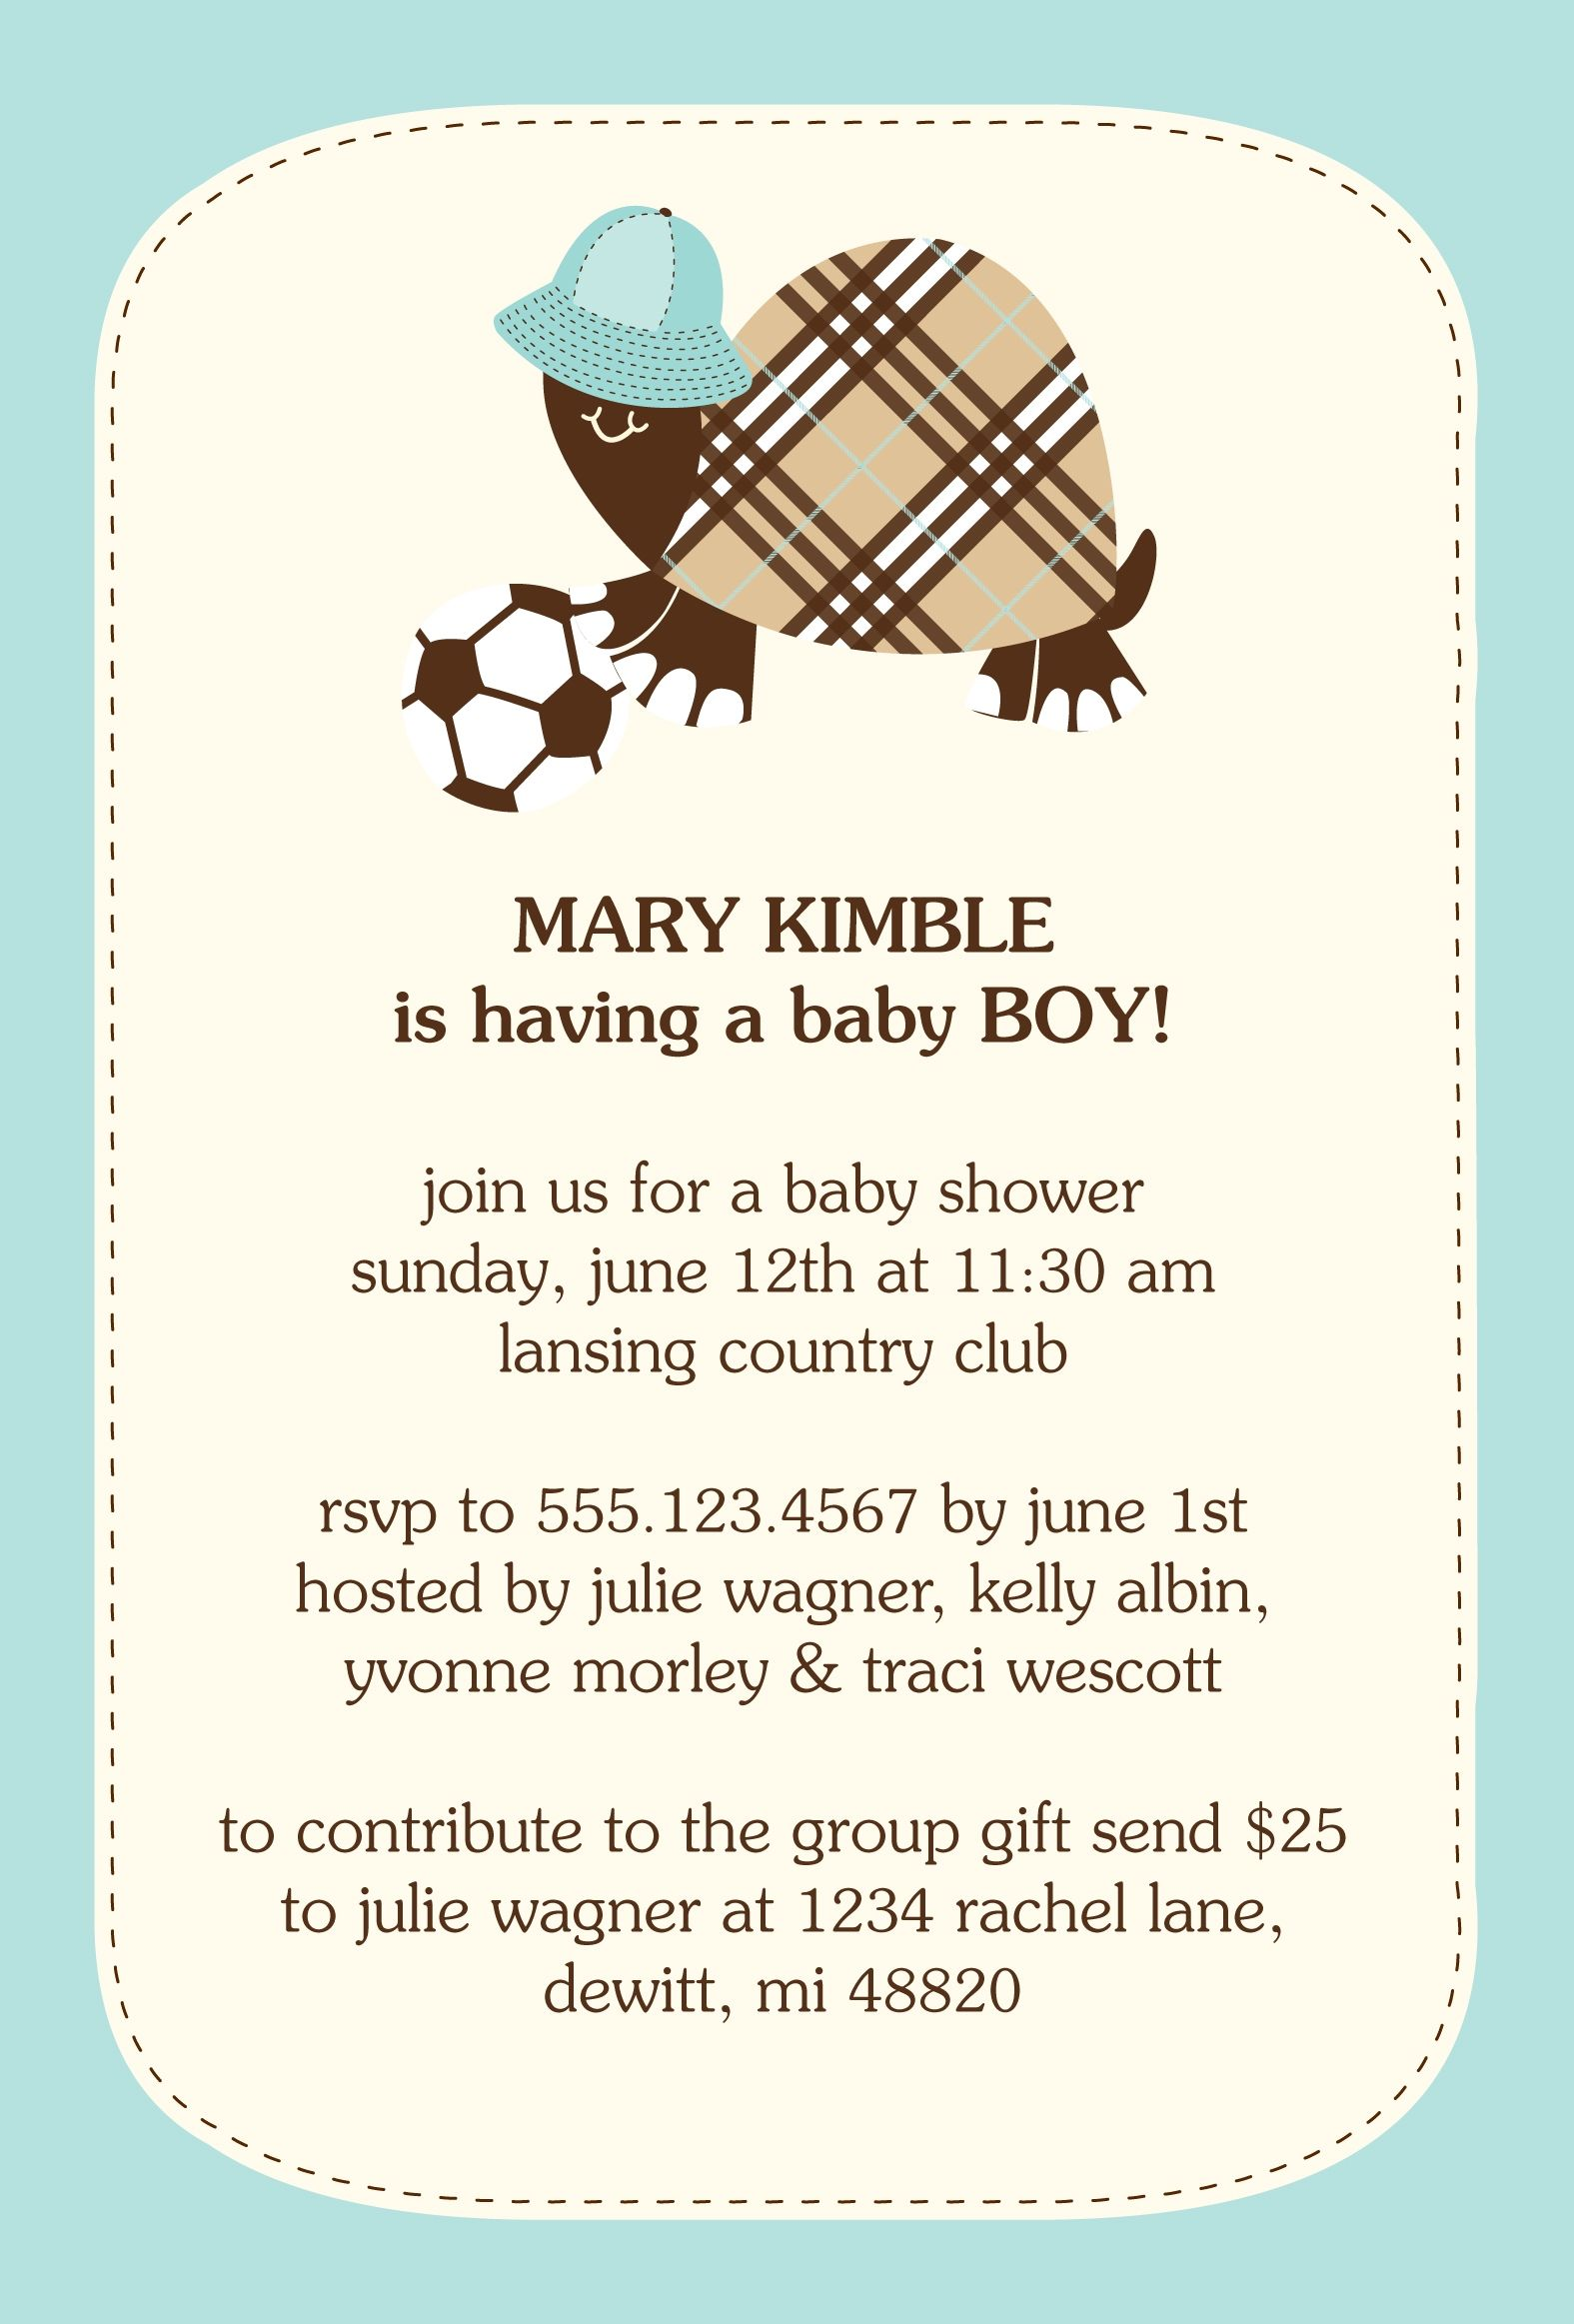 Funny Baby Shower Sayings For Invitations | http://atwebry.info ...